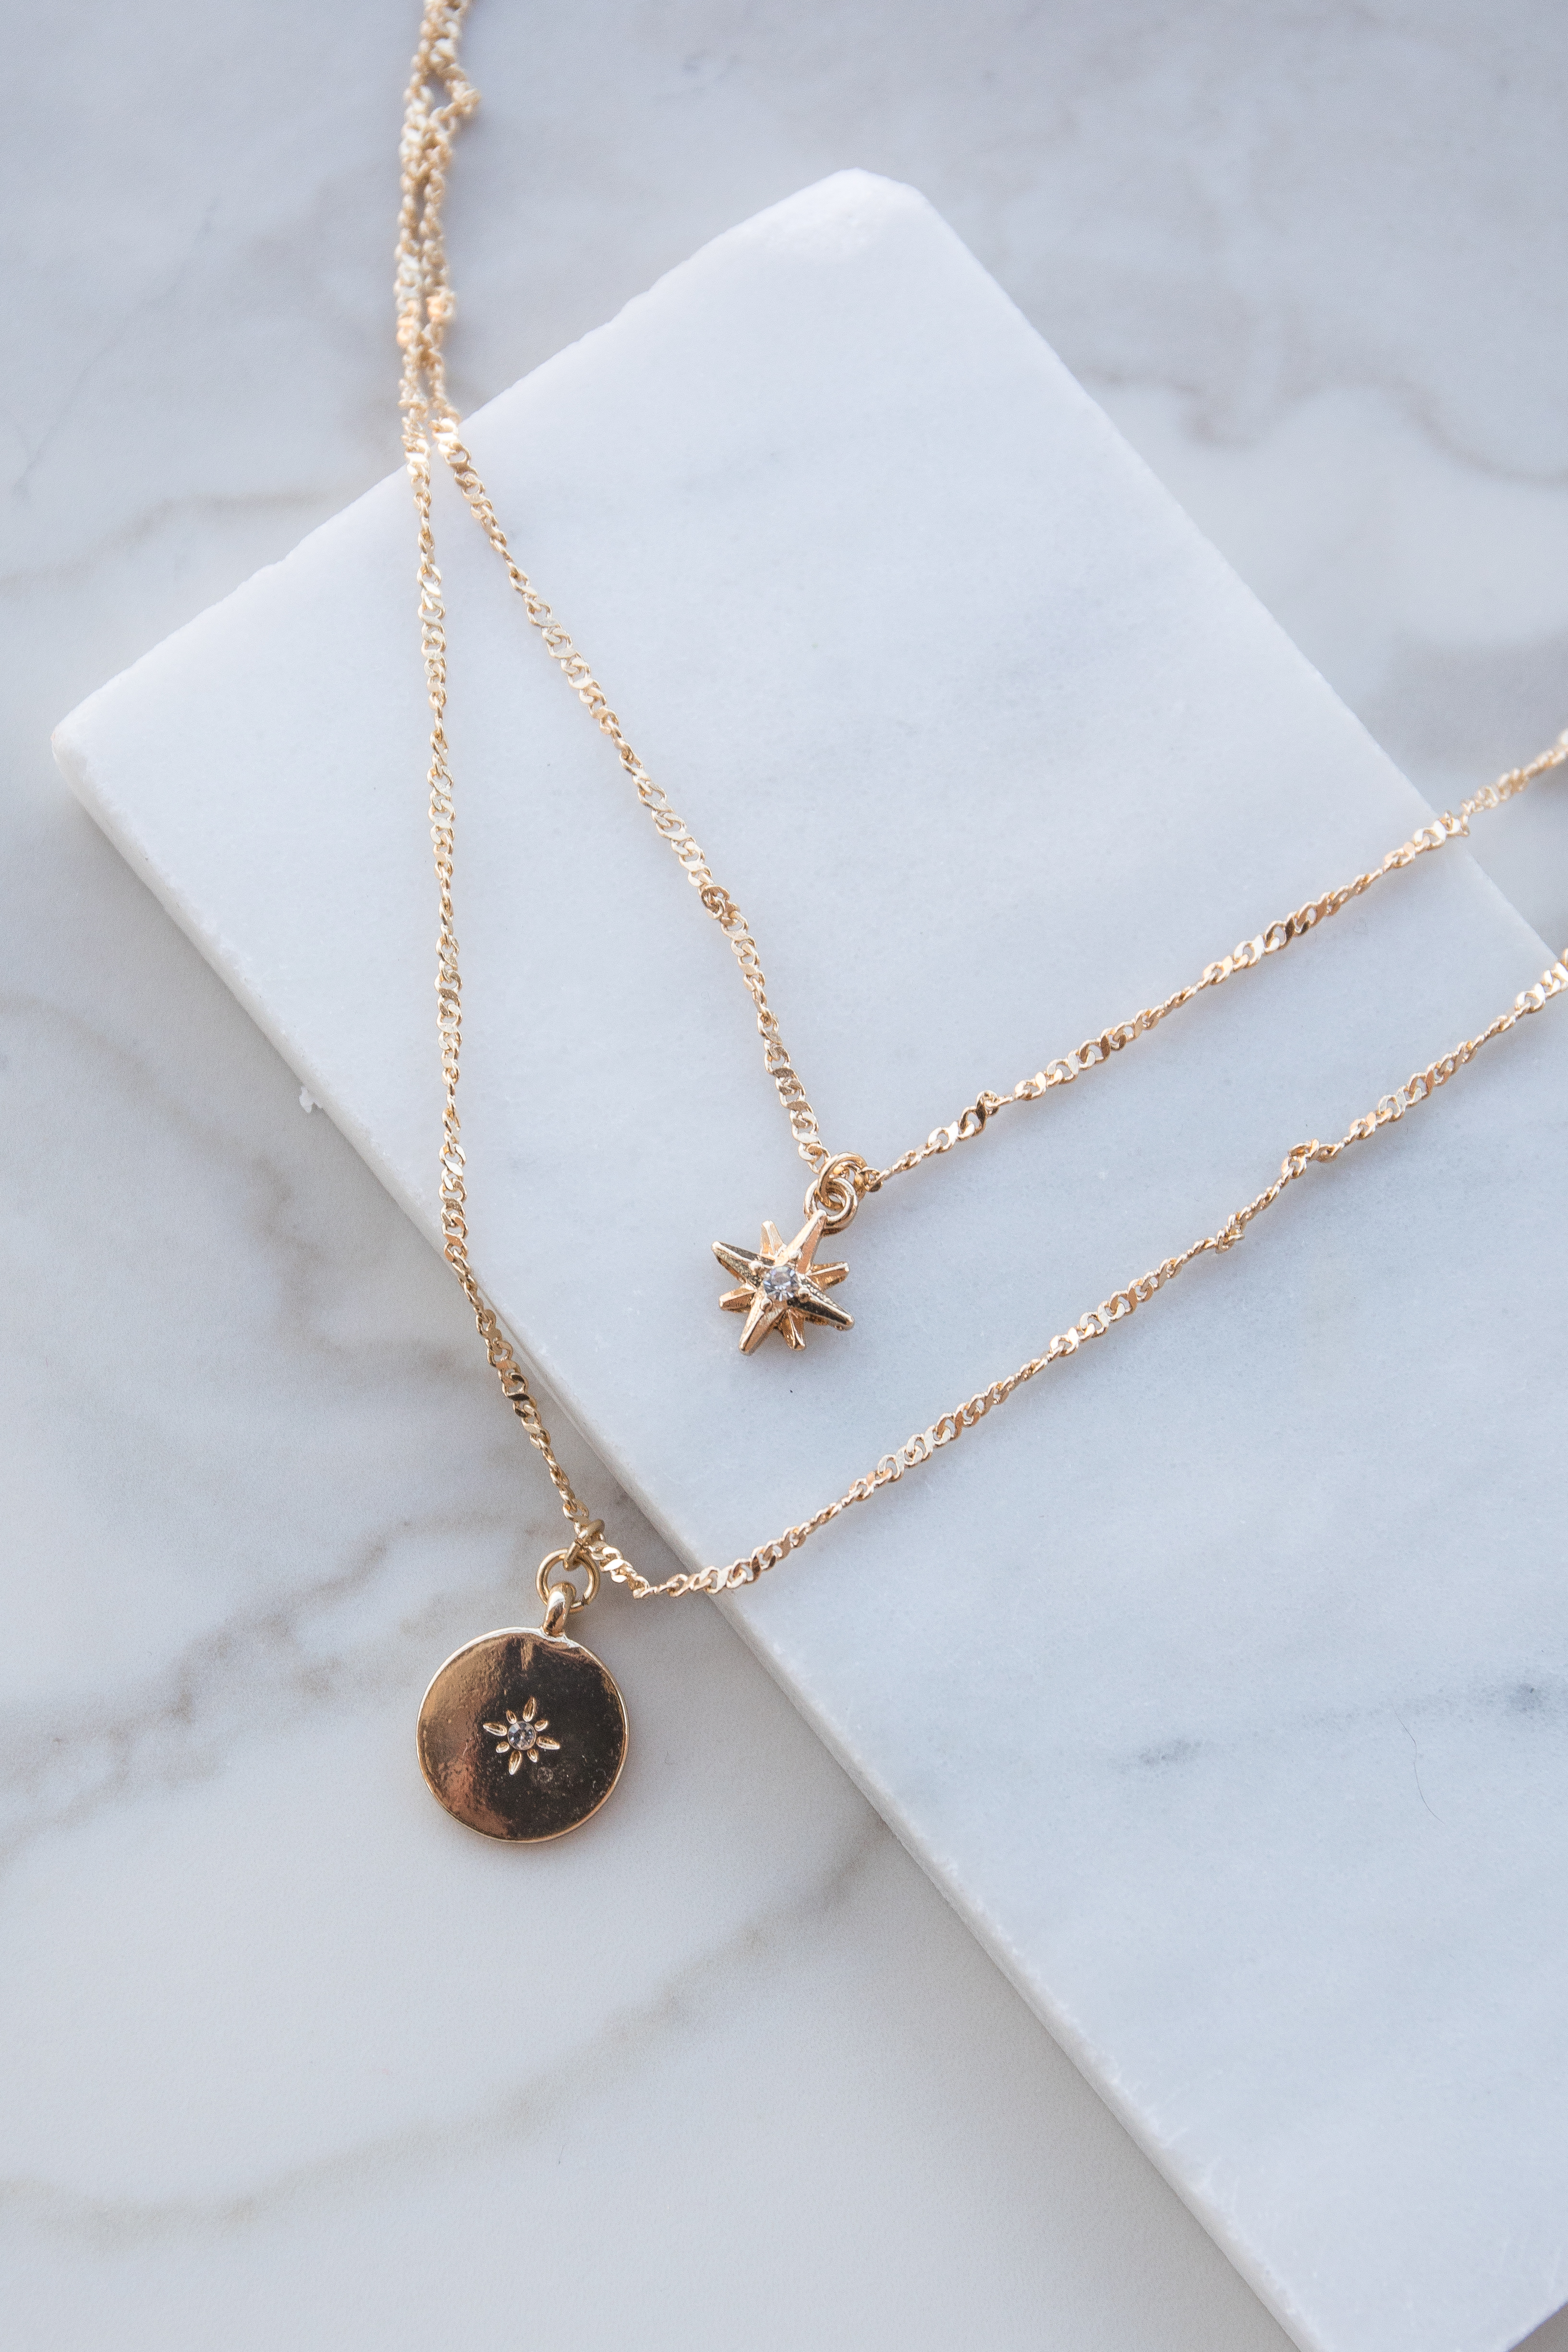 Gold Layered Necklace with Star and Coin Jeweled Pendants